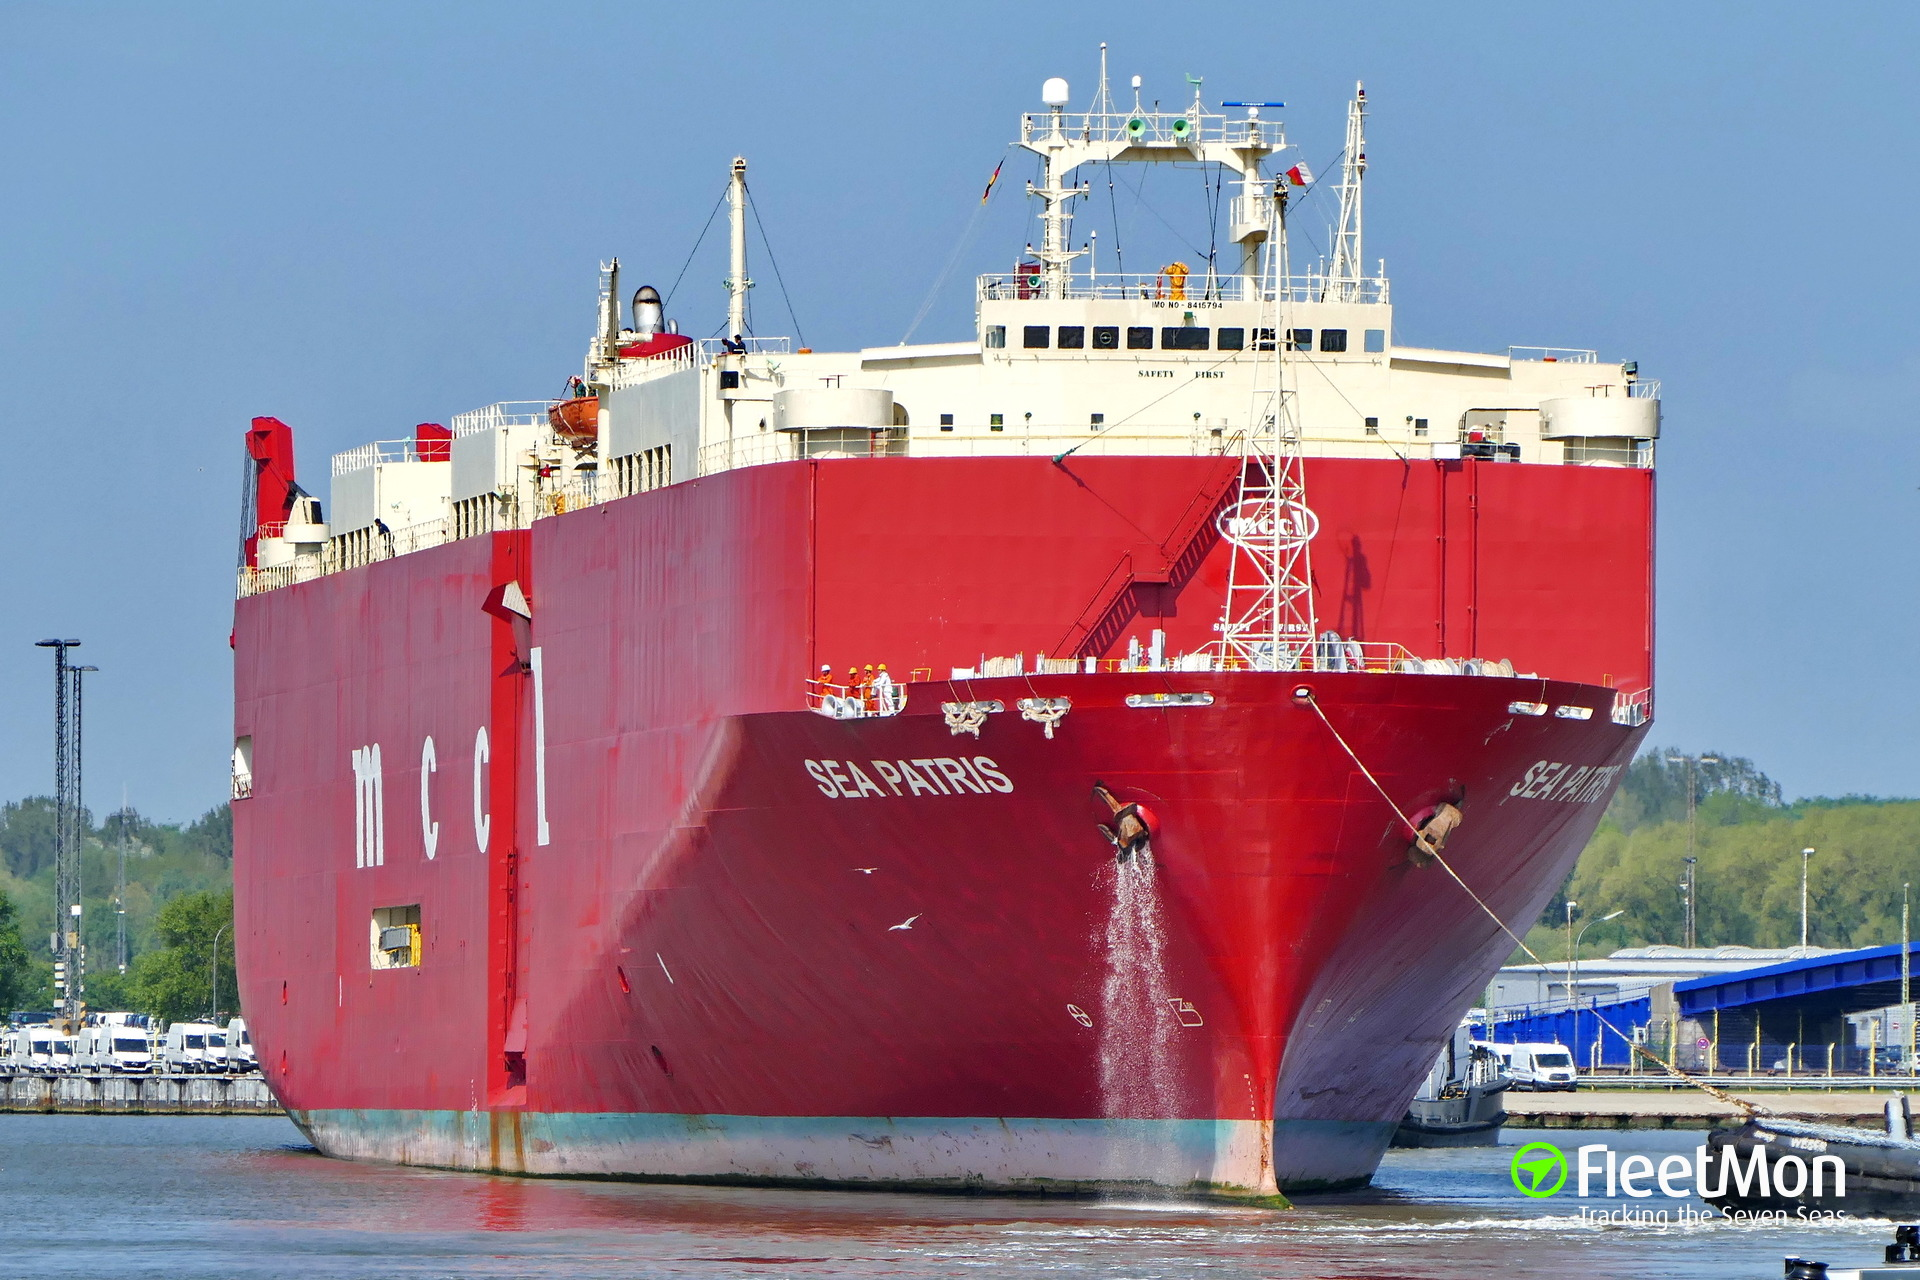 Disabled car carrier Franconia towed to Perama, Greece